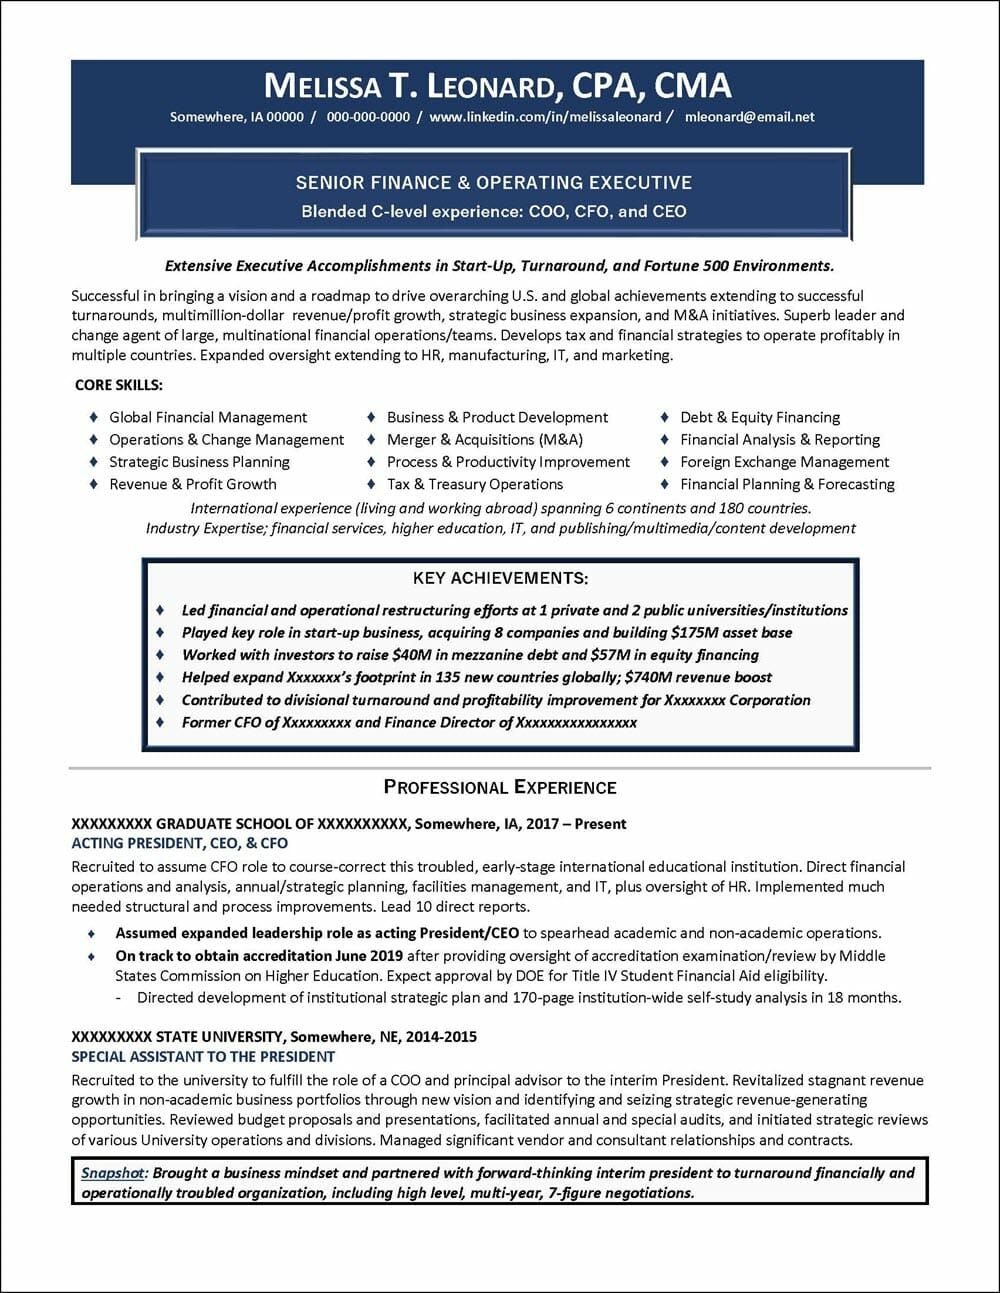 Finance And Operating Executive Resume Distinctive Career Services Executive Resume Resume Examples Professional Resume Examples